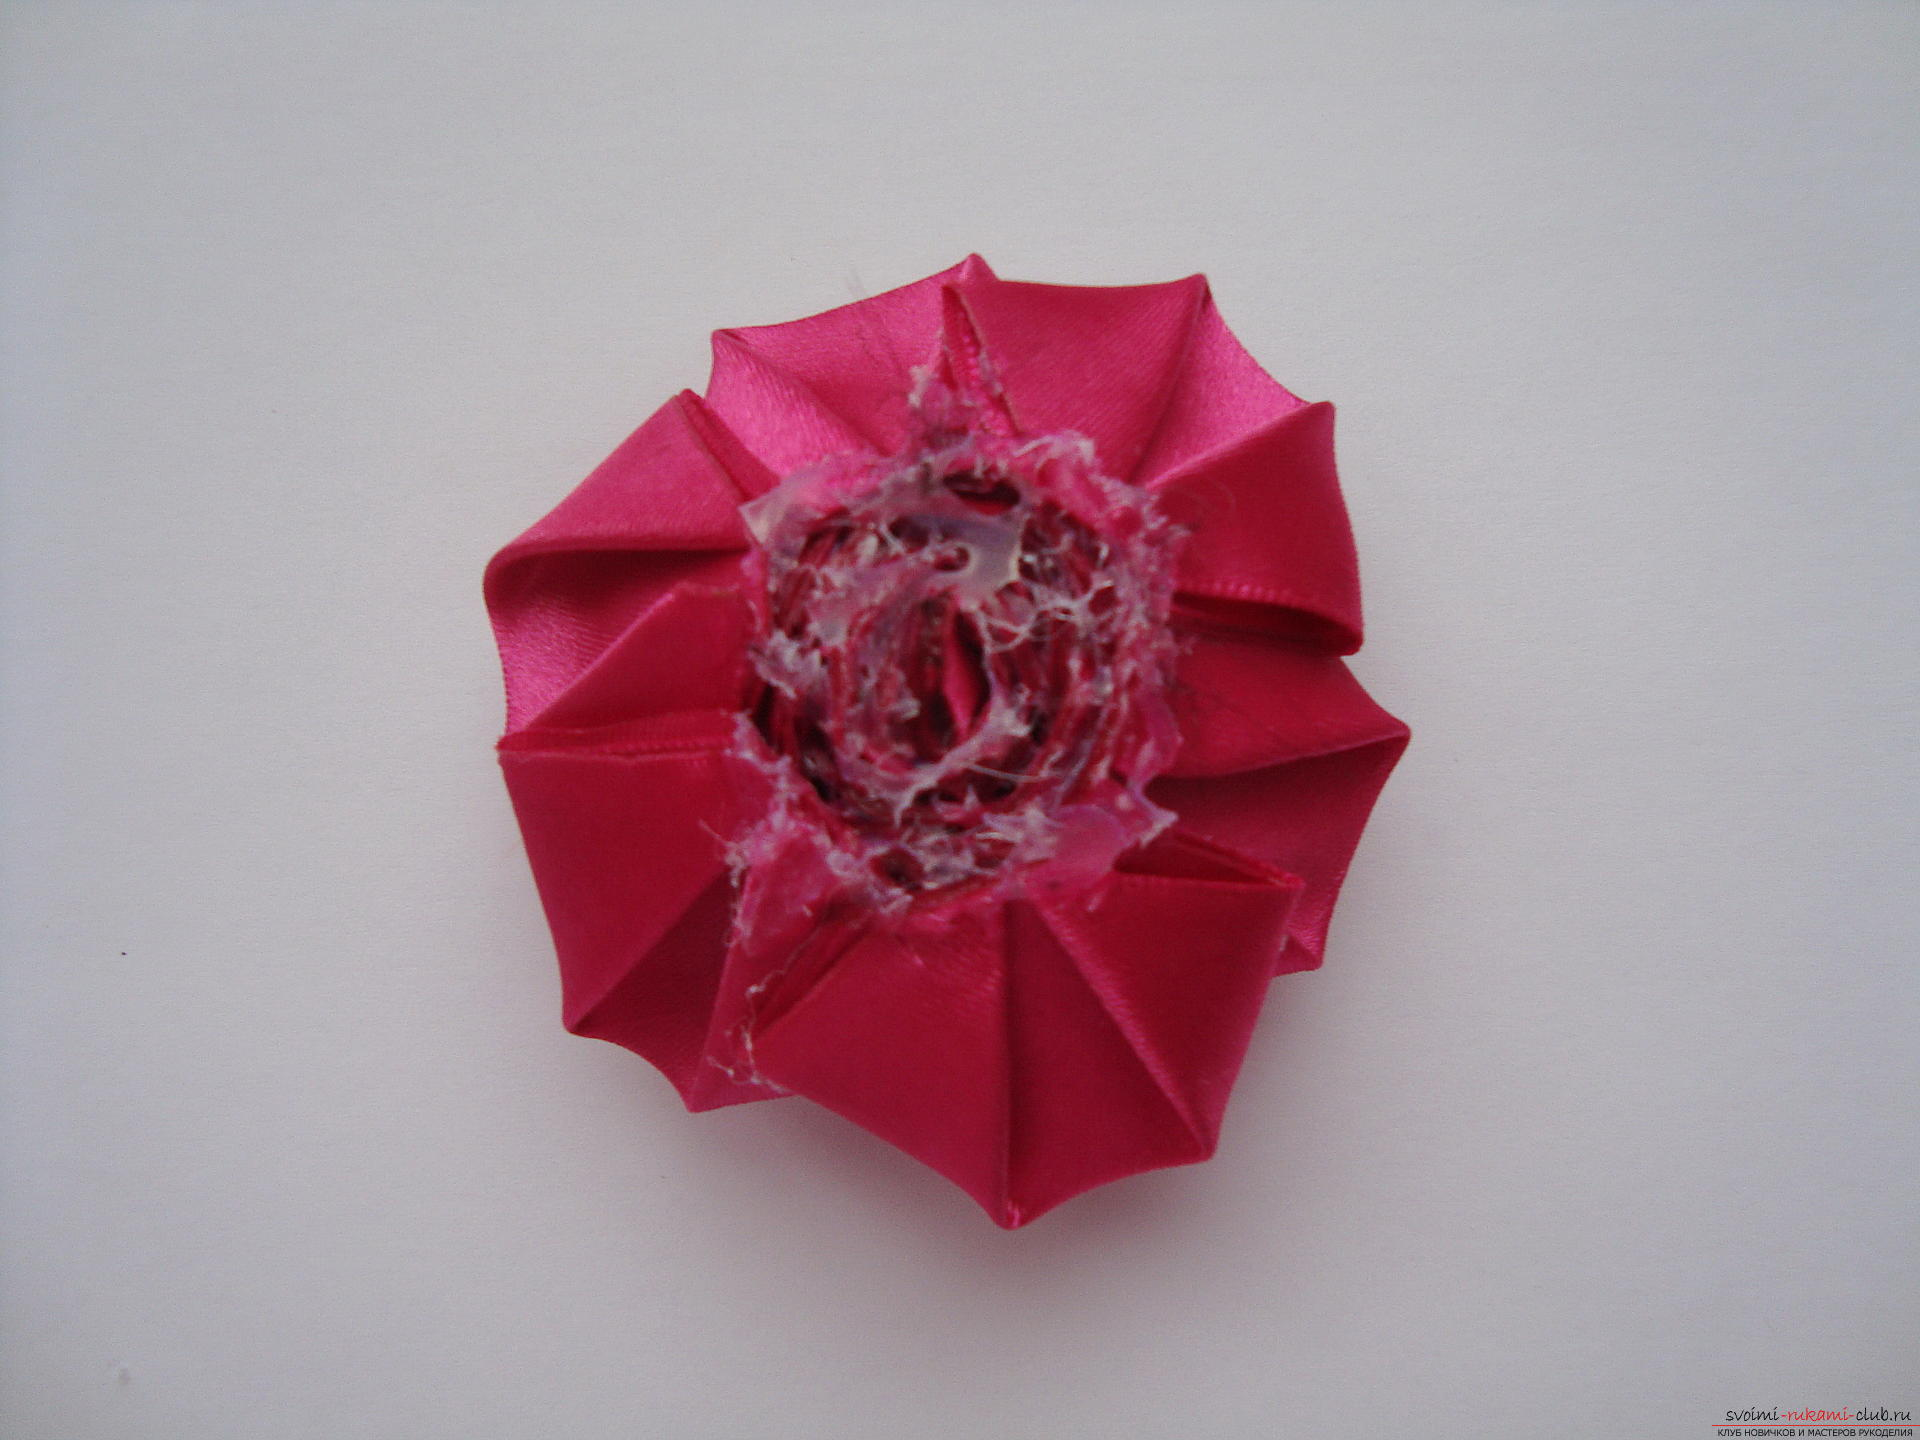 Step-by-step instructions for creating roses from the atlas with your own hands. Photo number 15